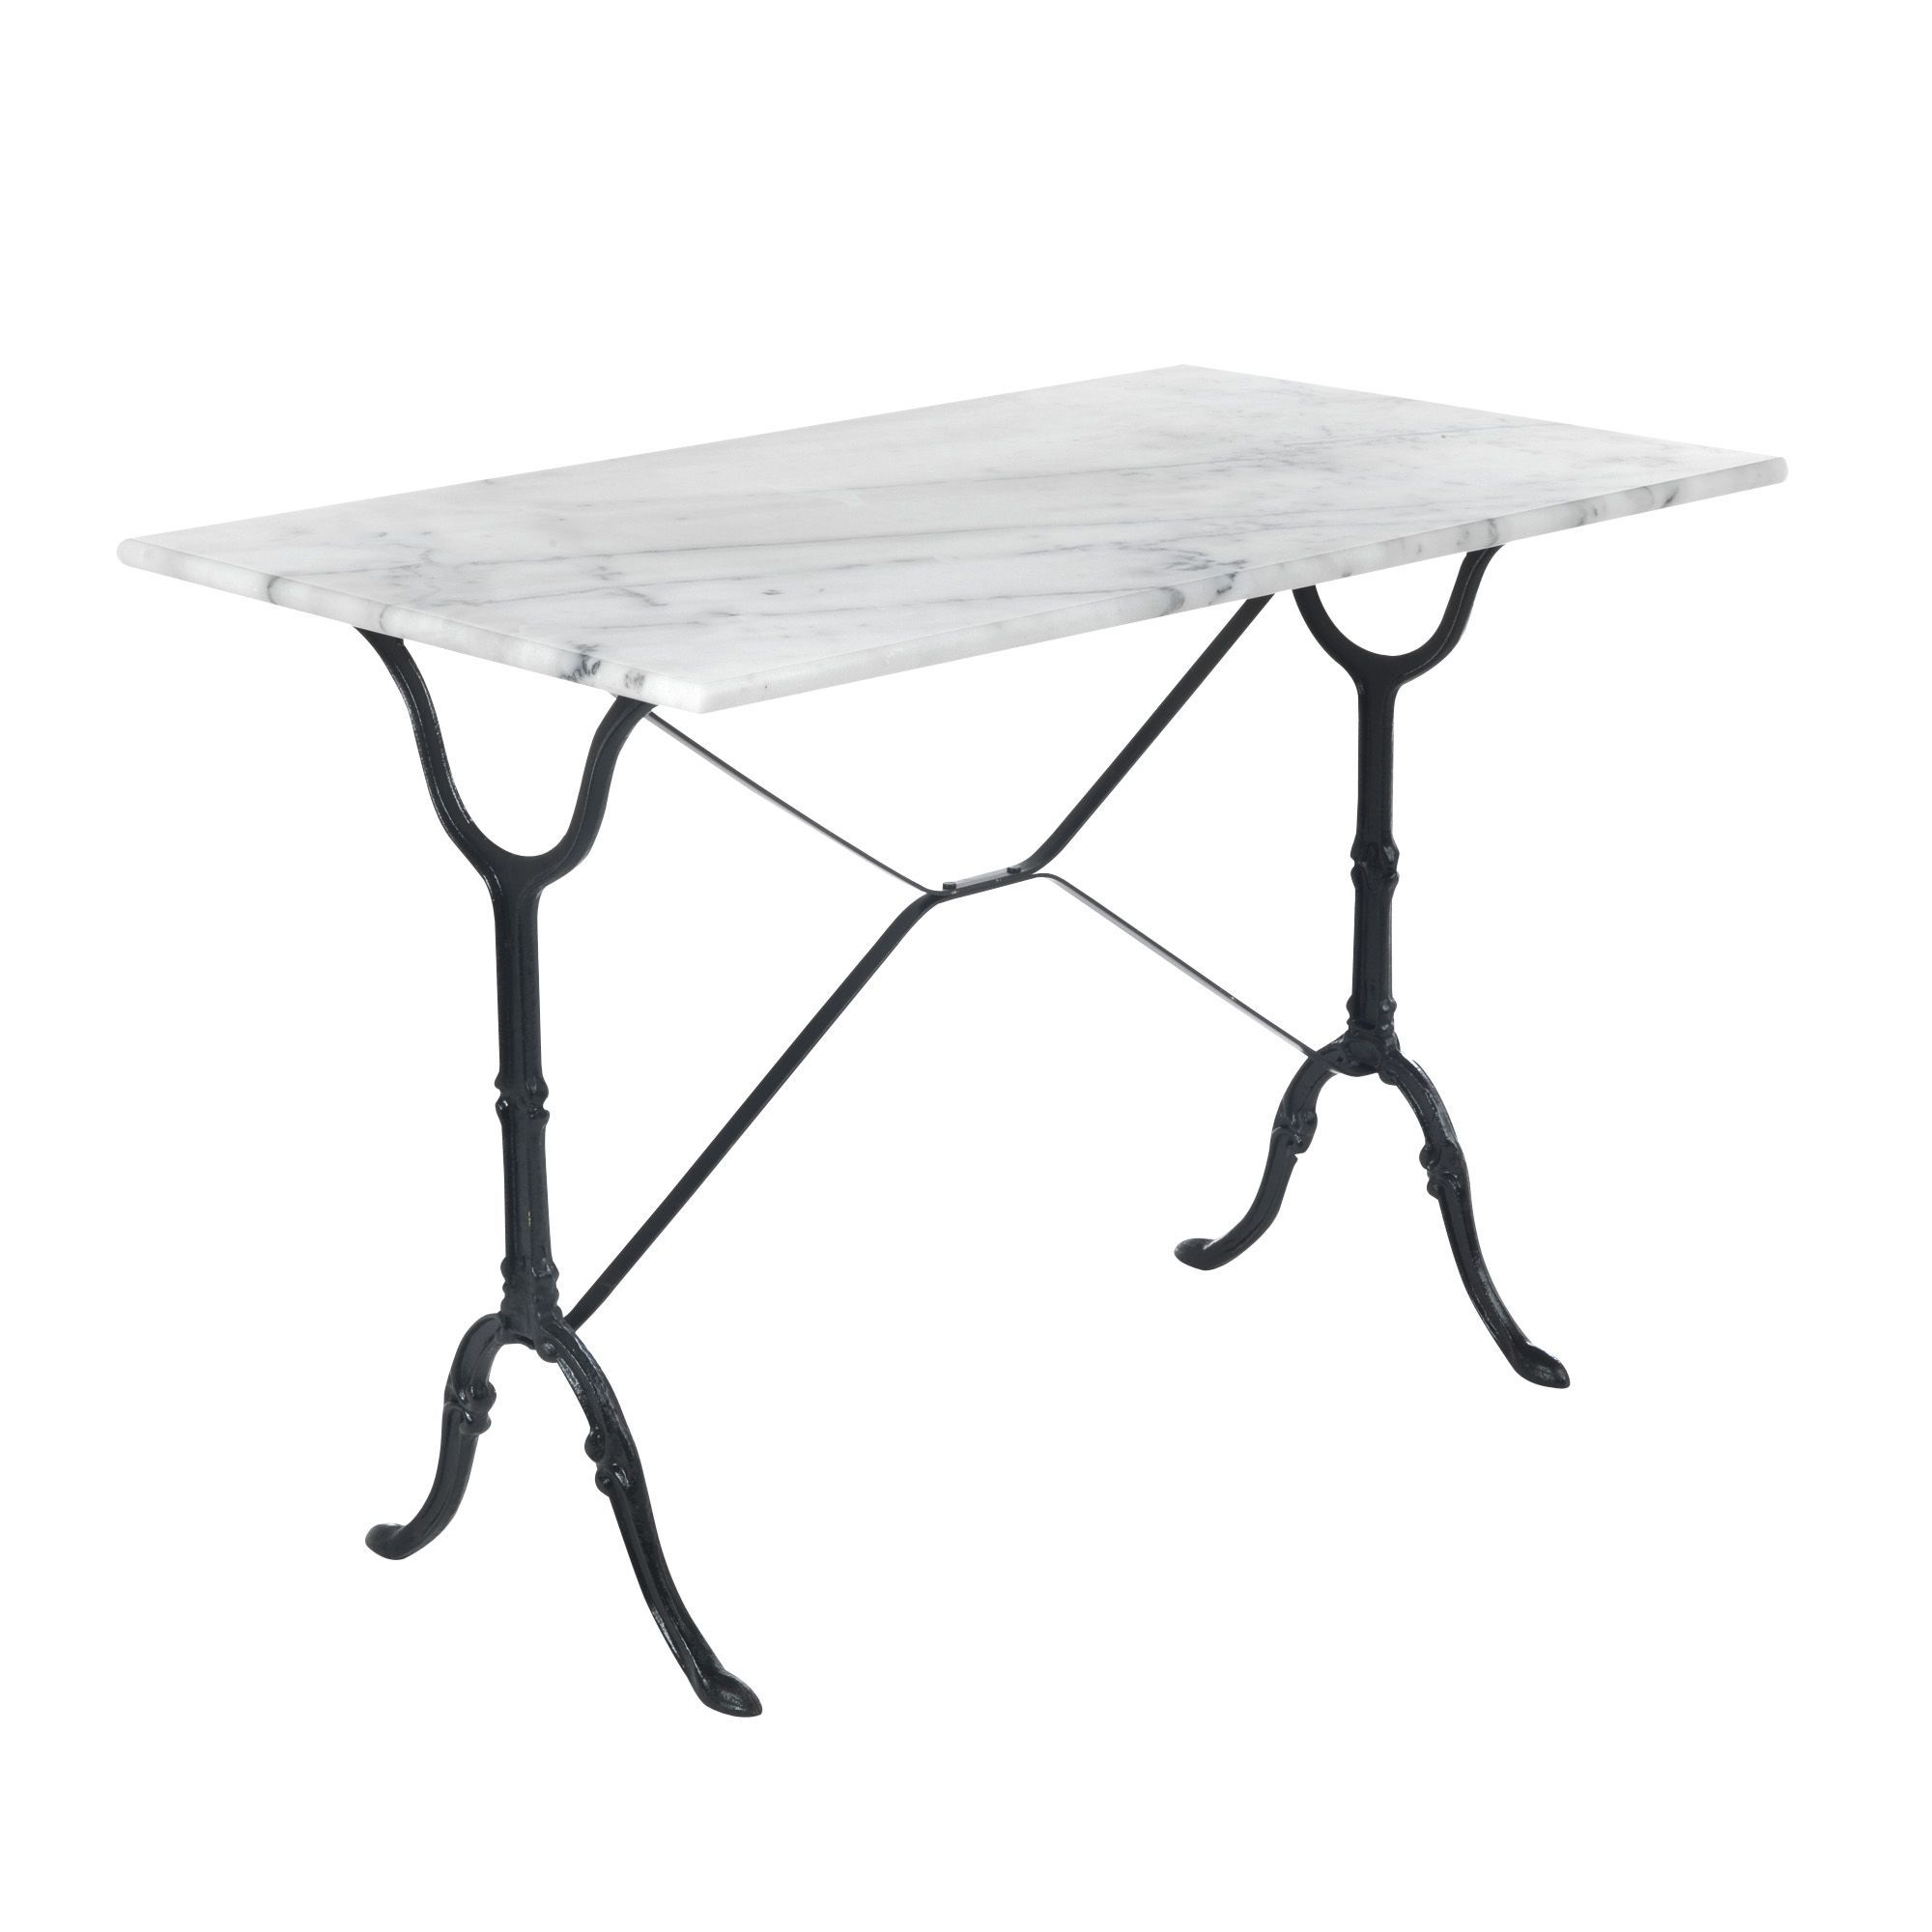 table rectangulaire avec plateau en marbre blanc noir bistrot tables rectangulaires tables. Black Bedroom Furniture Sets. Home Design Ideas